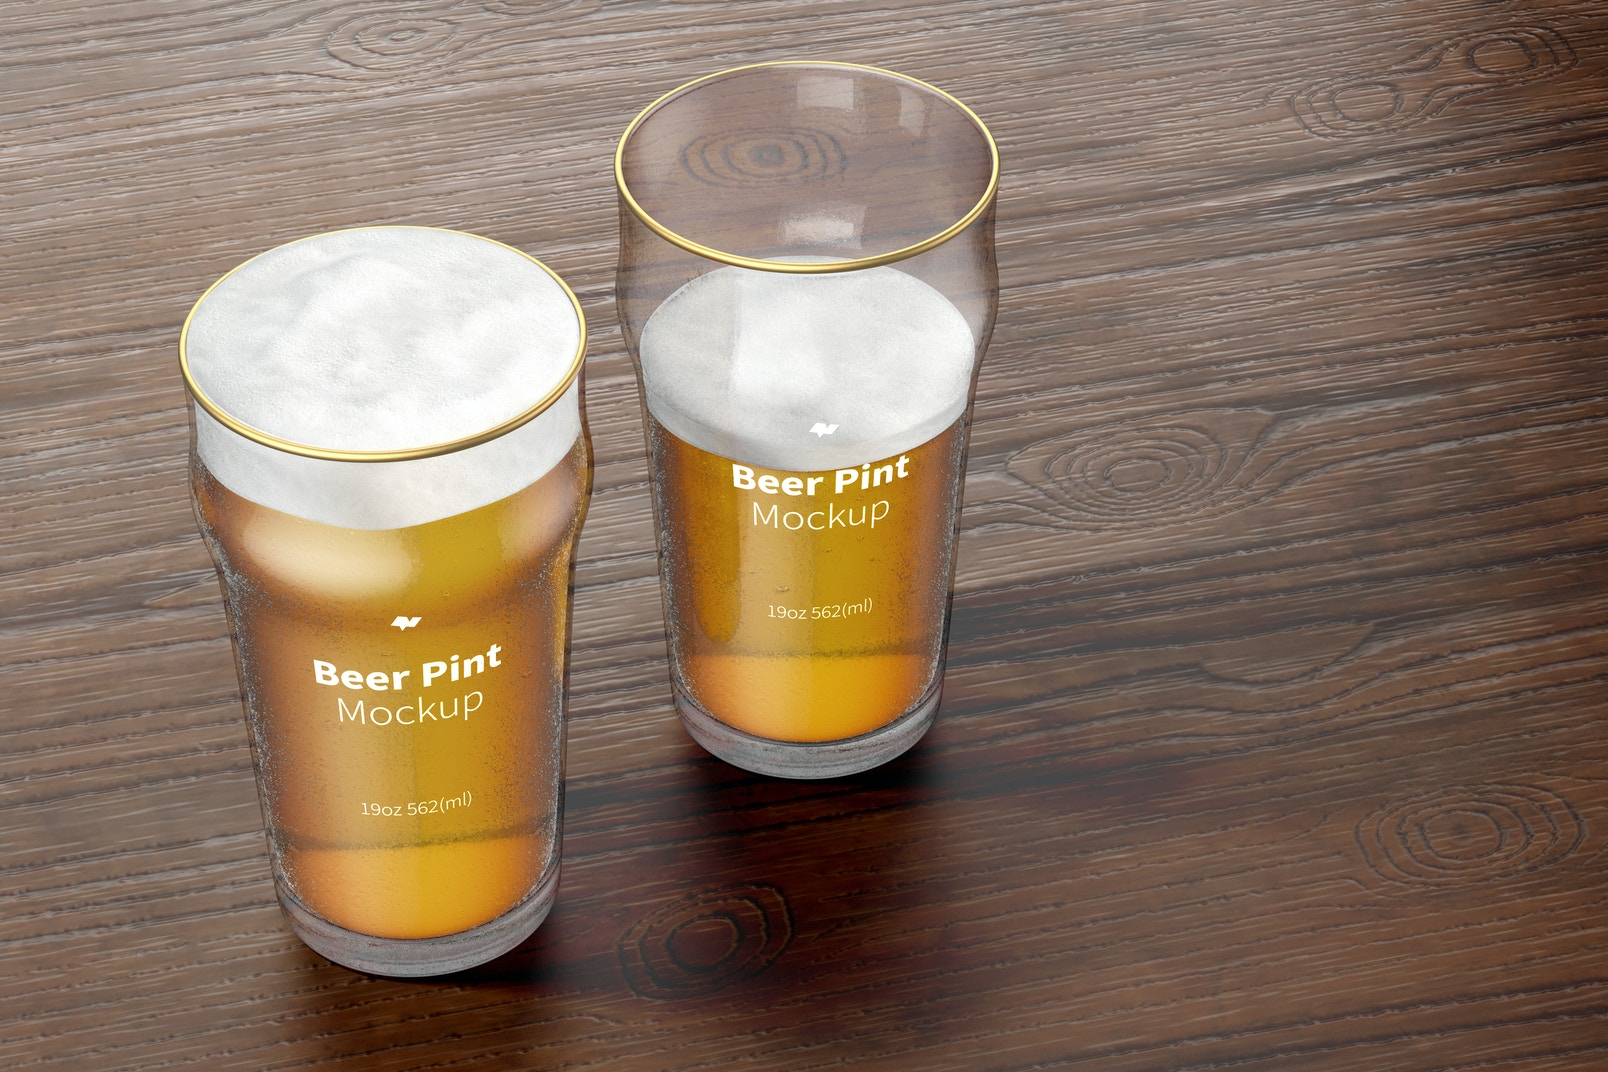 19 oz Beer Nonic Pint Glass Mockup, Perspective